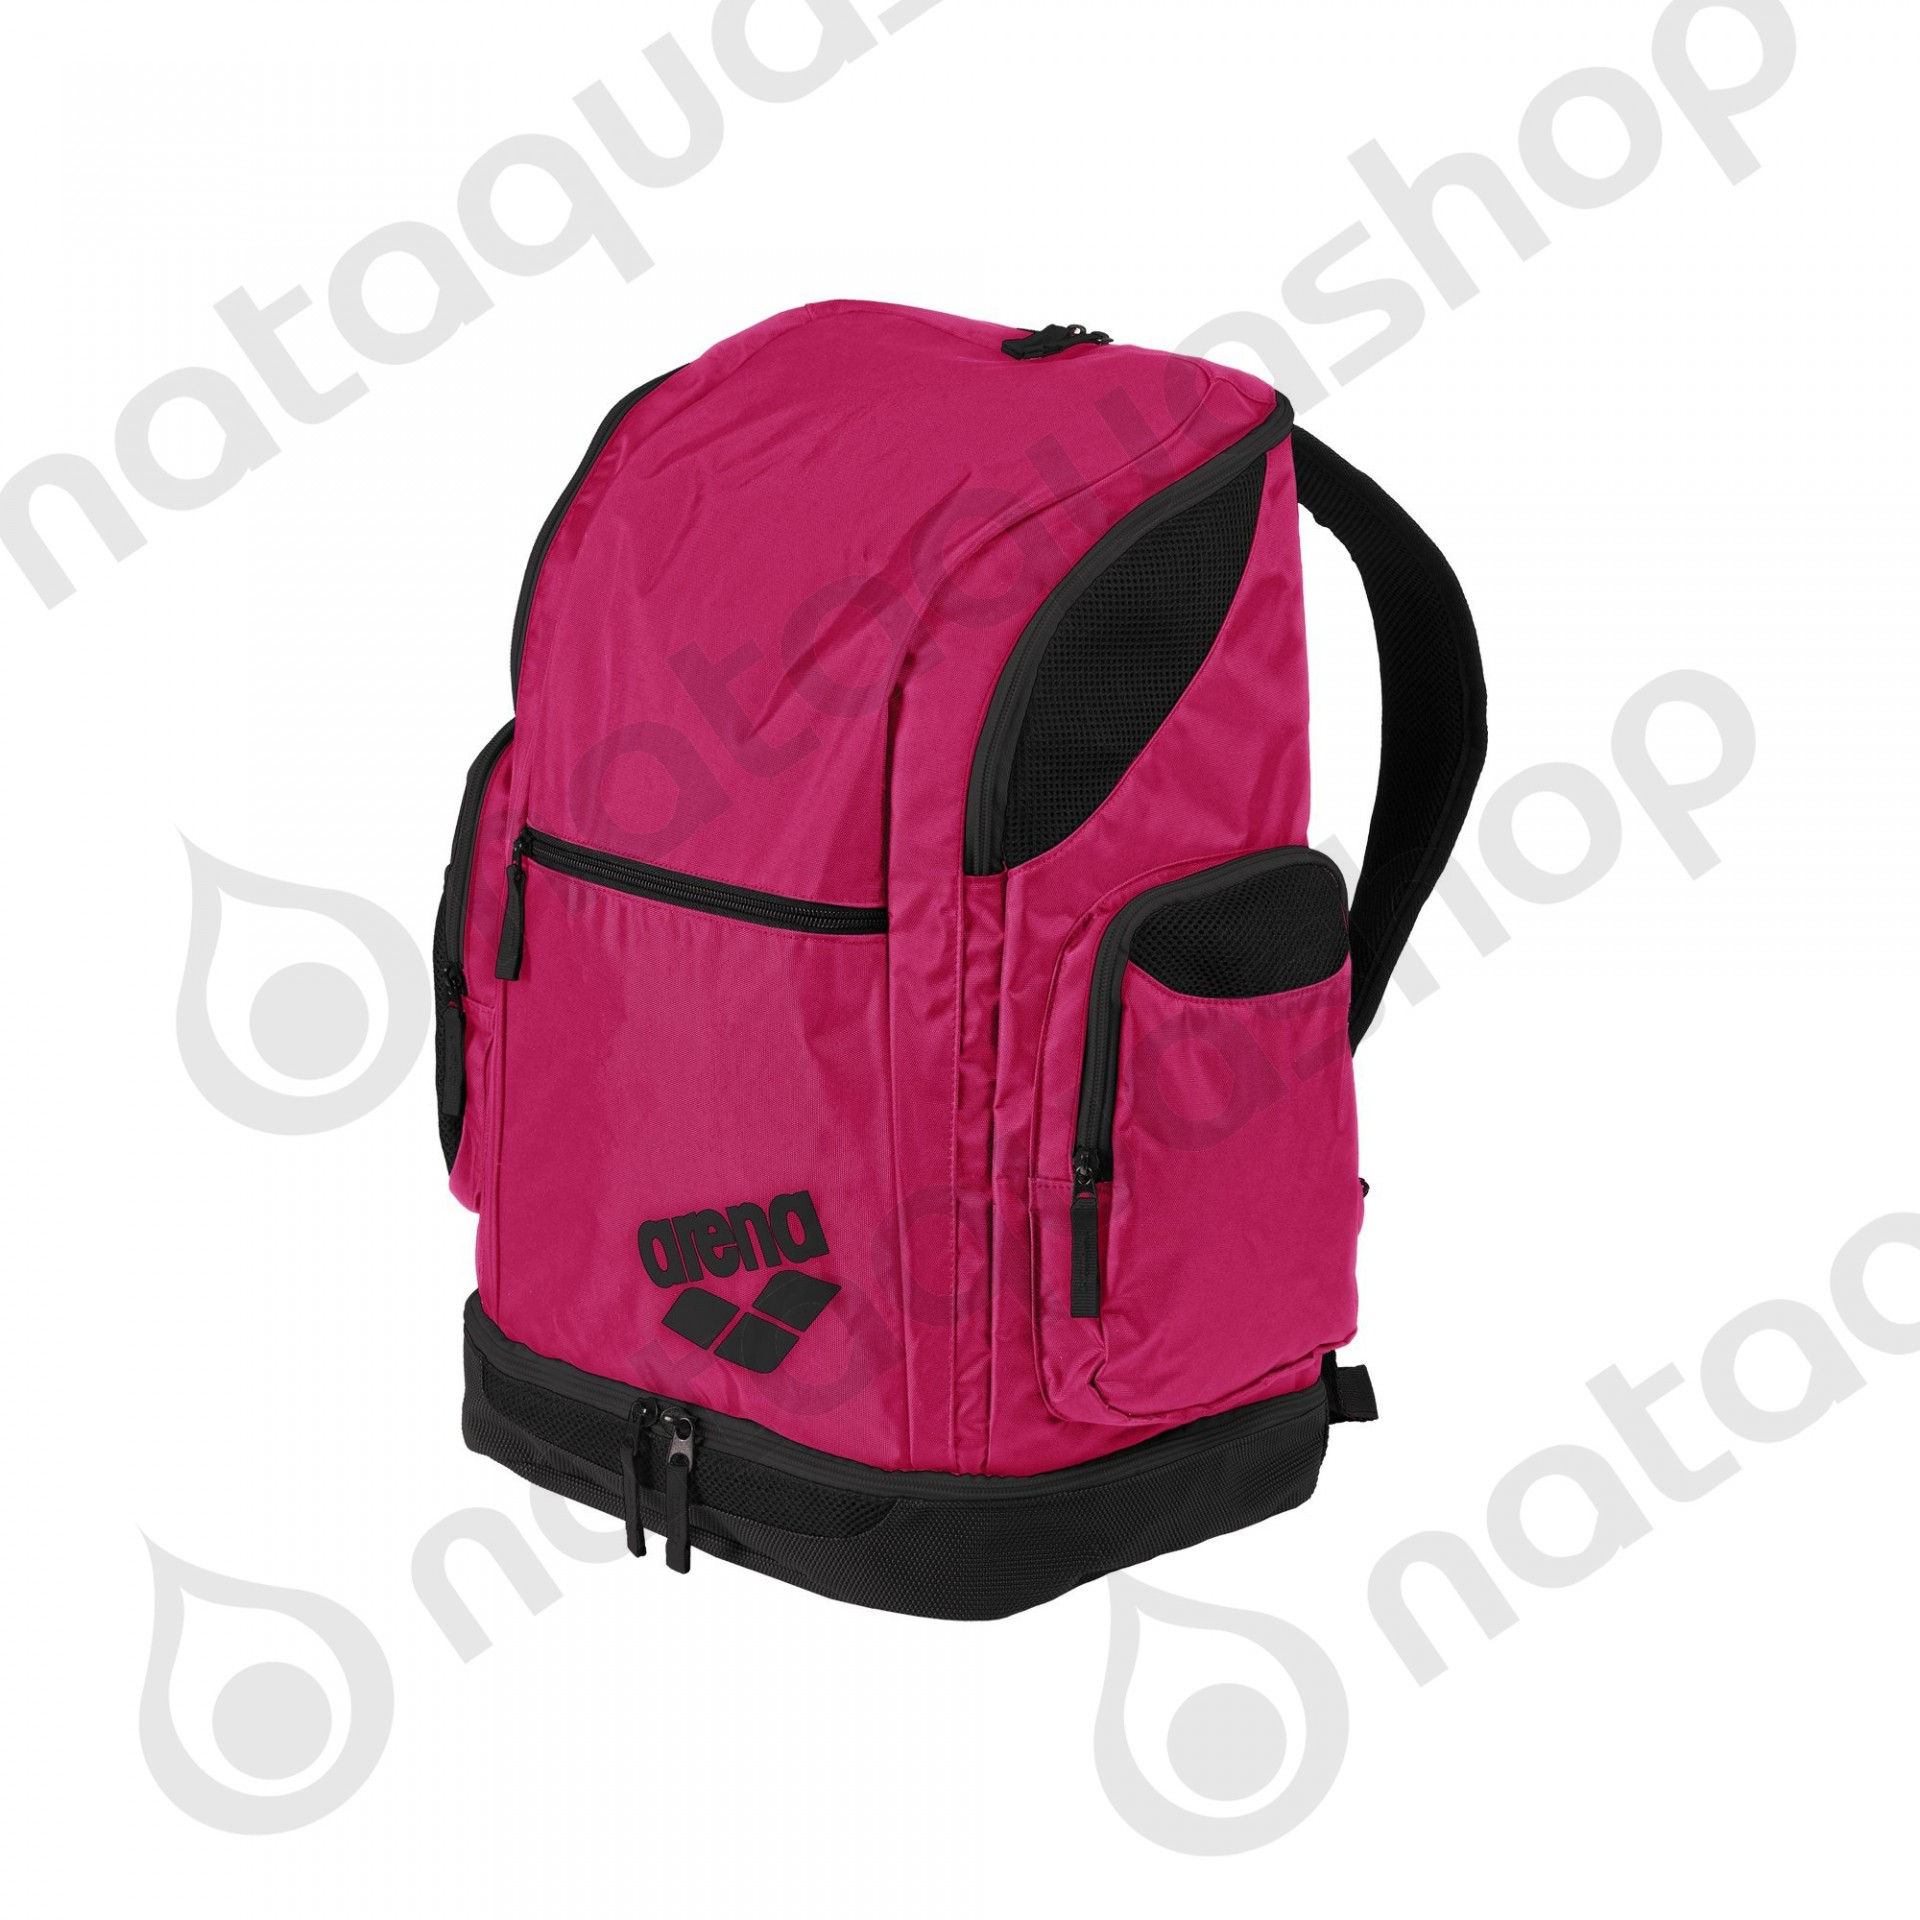 6c9d4ebe400dd SPIKY 2 LARGE BACKPACK Fuchsia ARENA - SWIM EQUIPMENT - Nataquashop